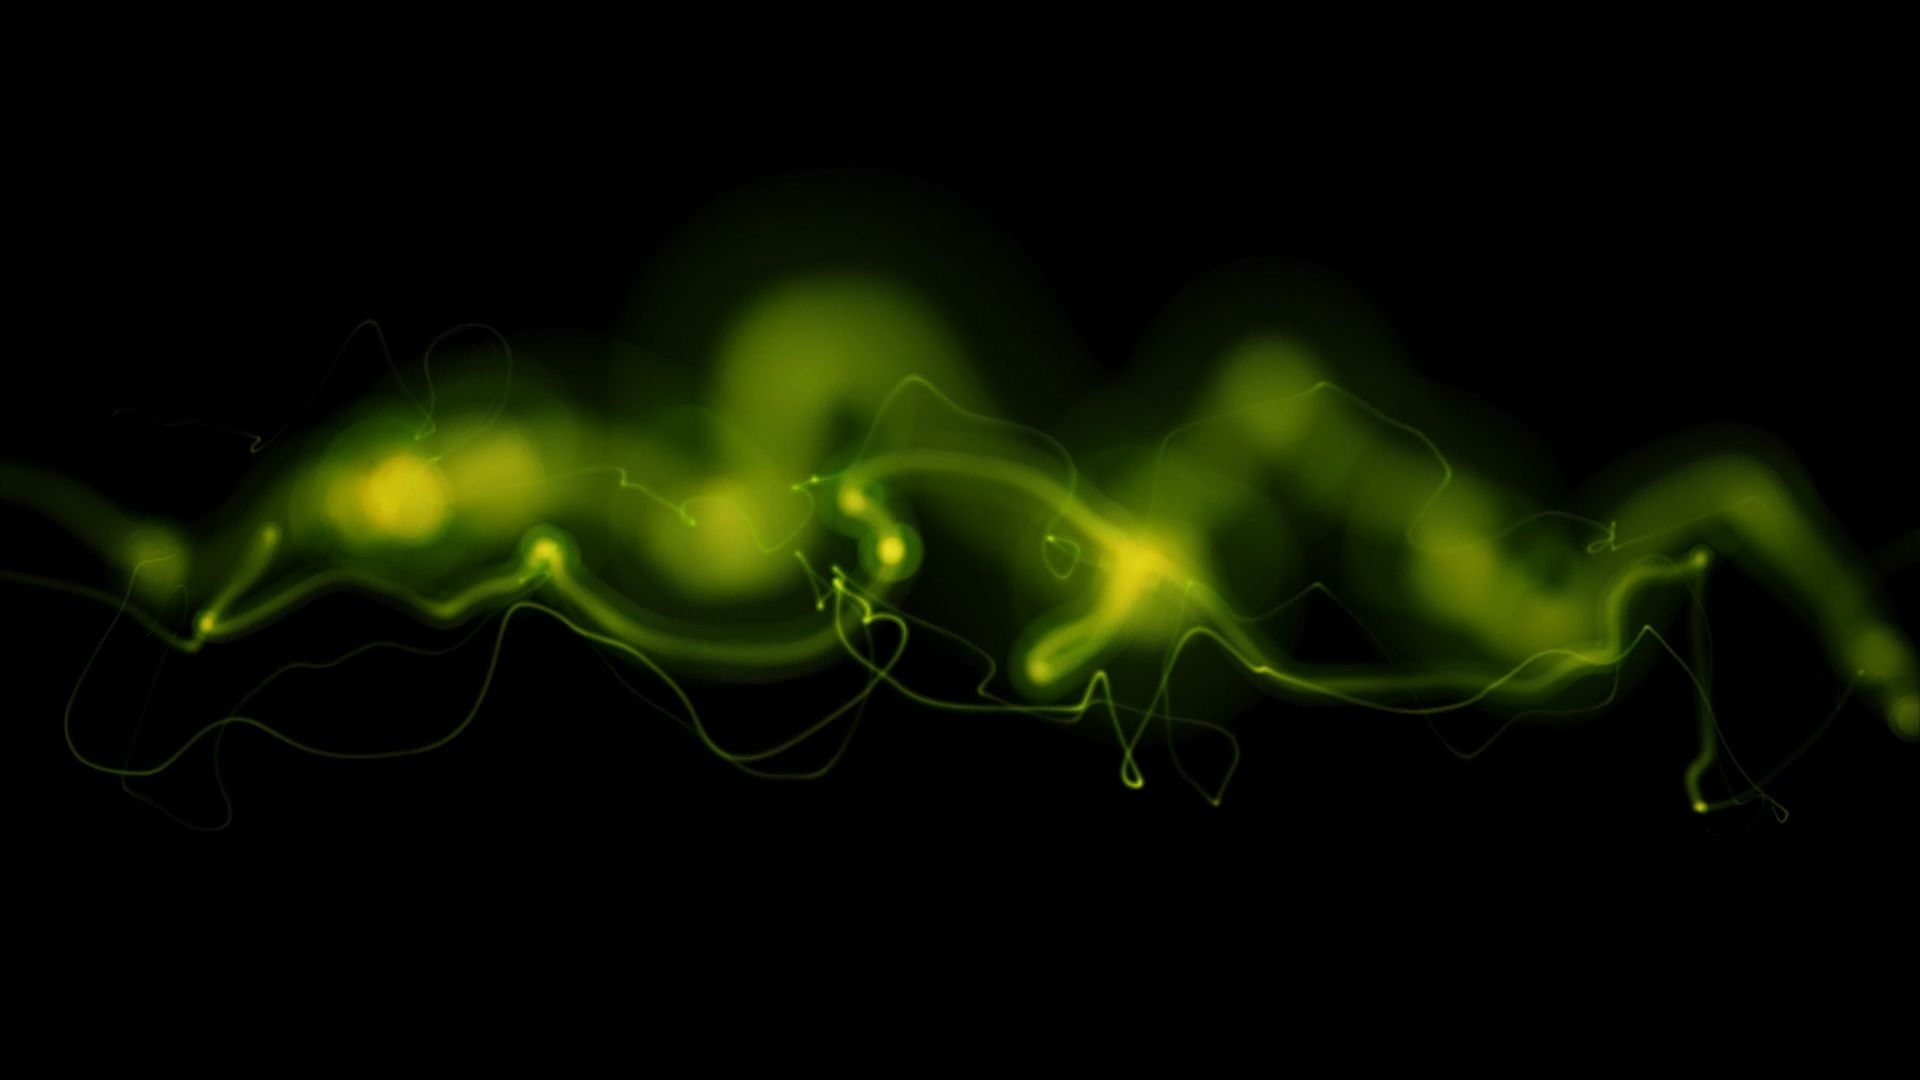 abstract sound wallpaper 42121 1920x1080 px ~ hdwallsource